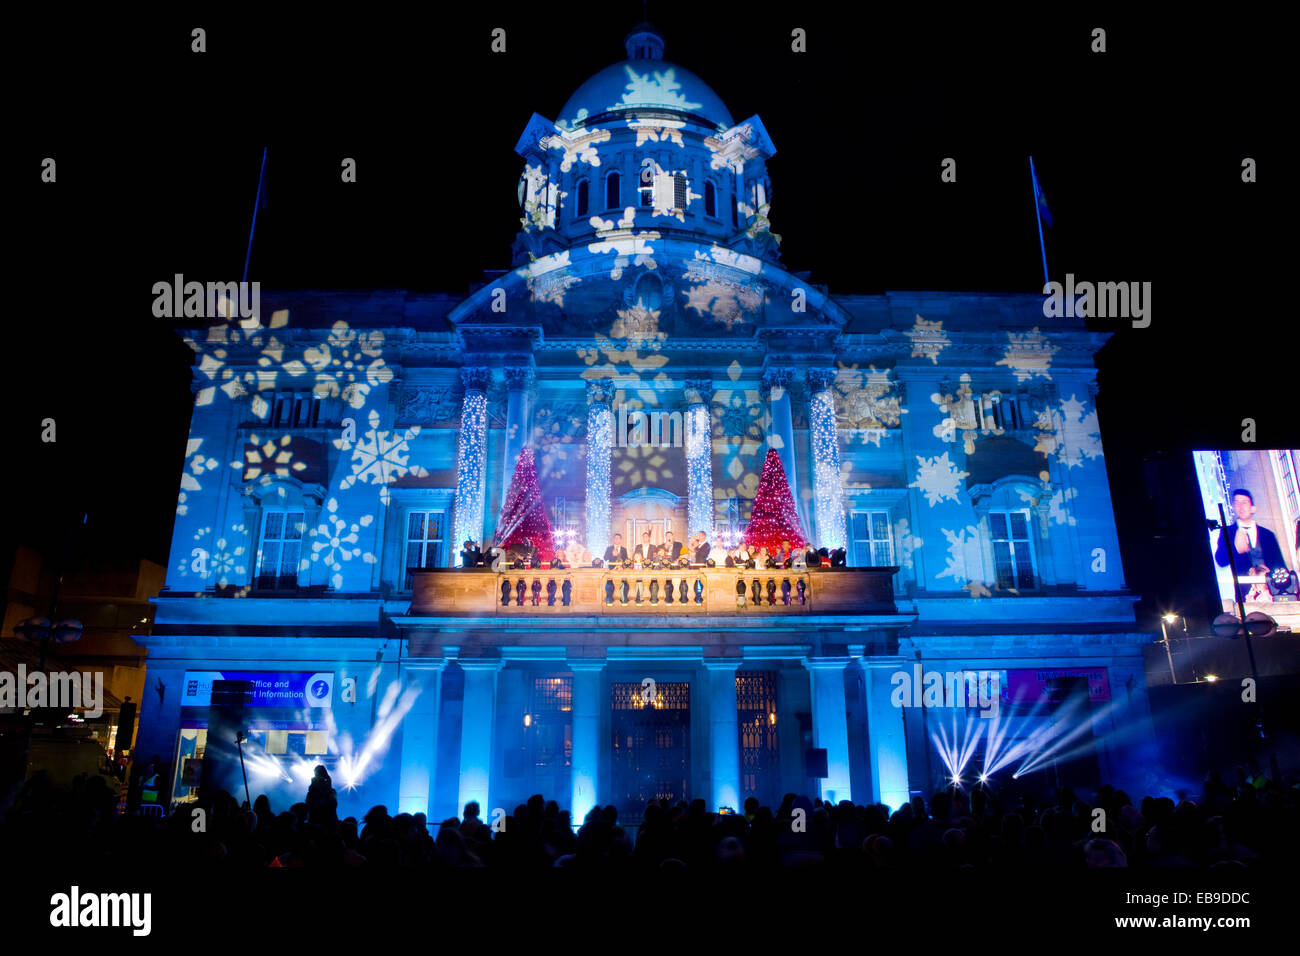 The Christmas lights switch-on event at the City Hall in Queen Victoria Square Hull East Yorkshire UK. 27th November 2014. Credit LEE BEEL/Alamy & Hull UK. 27th Nov 2014. The Christmas lights switch-on event at ... azcodes.com